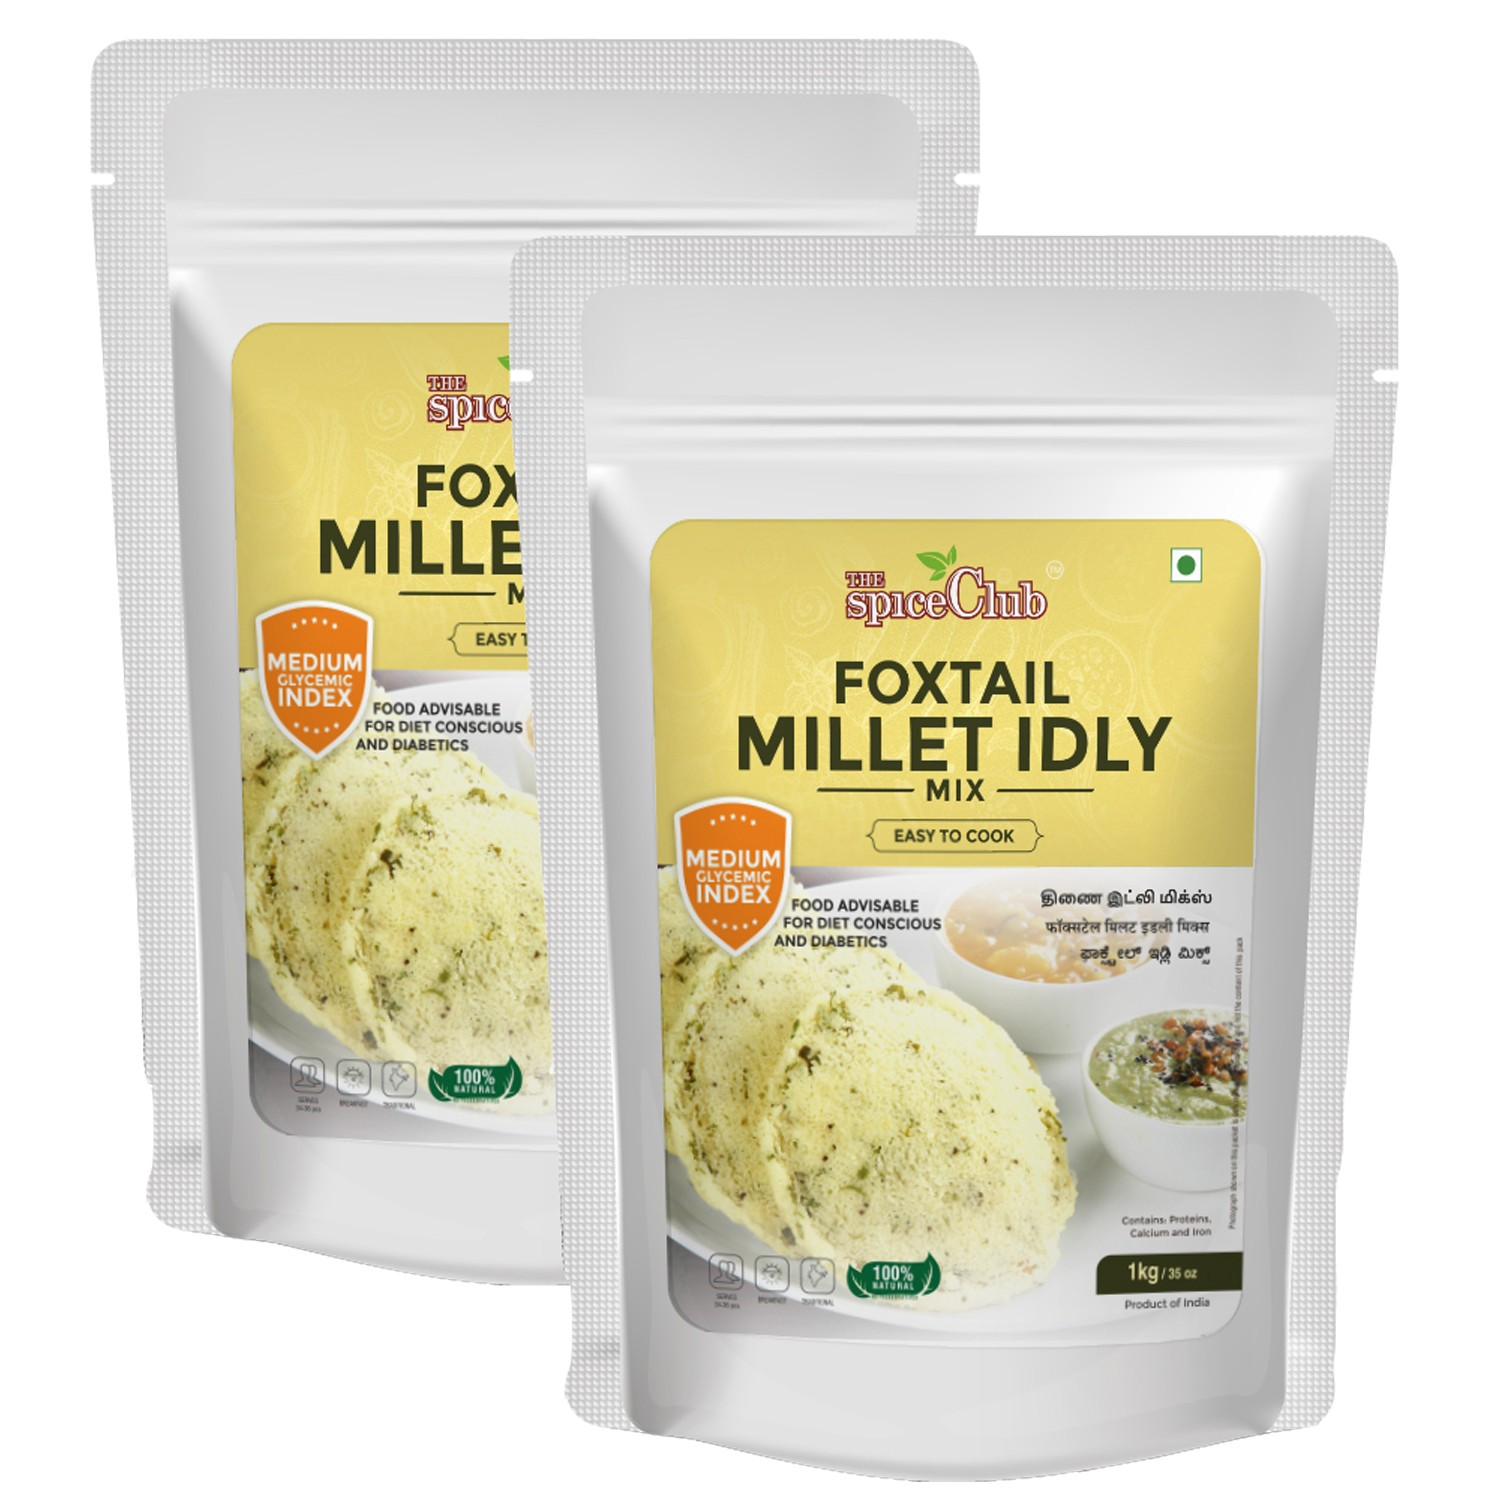 Foxtail Millet Idly Mix 1KG- pack of 2  (100% Natural, No Preservatives, No Artificial Ingredients)